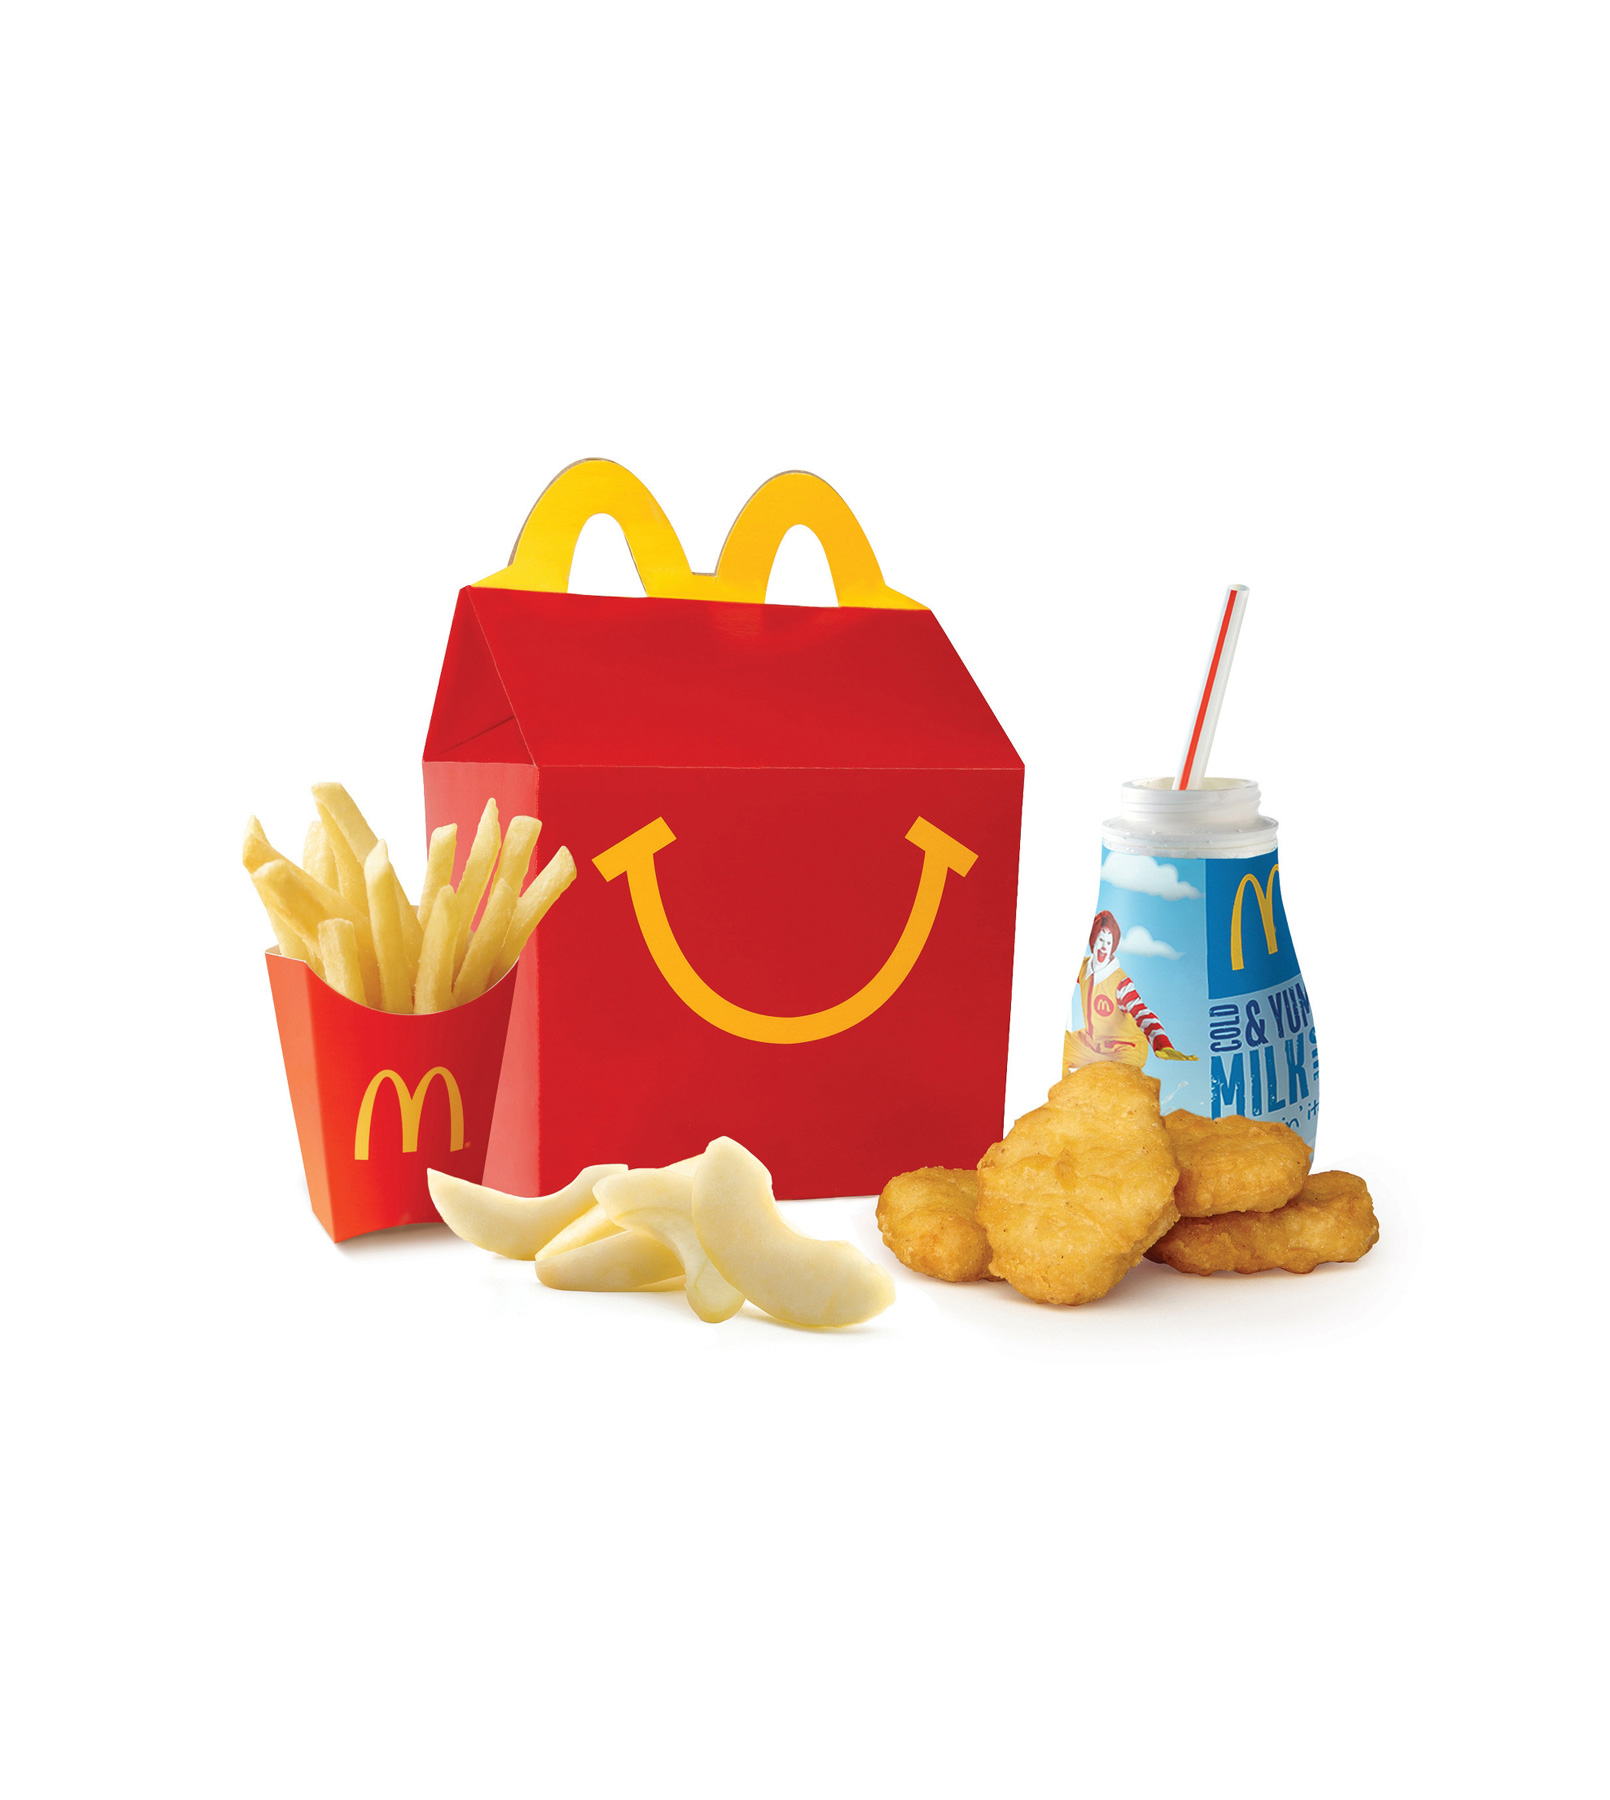 McDonald's nixes cheeseburger from Happy Meal as part of larger health push